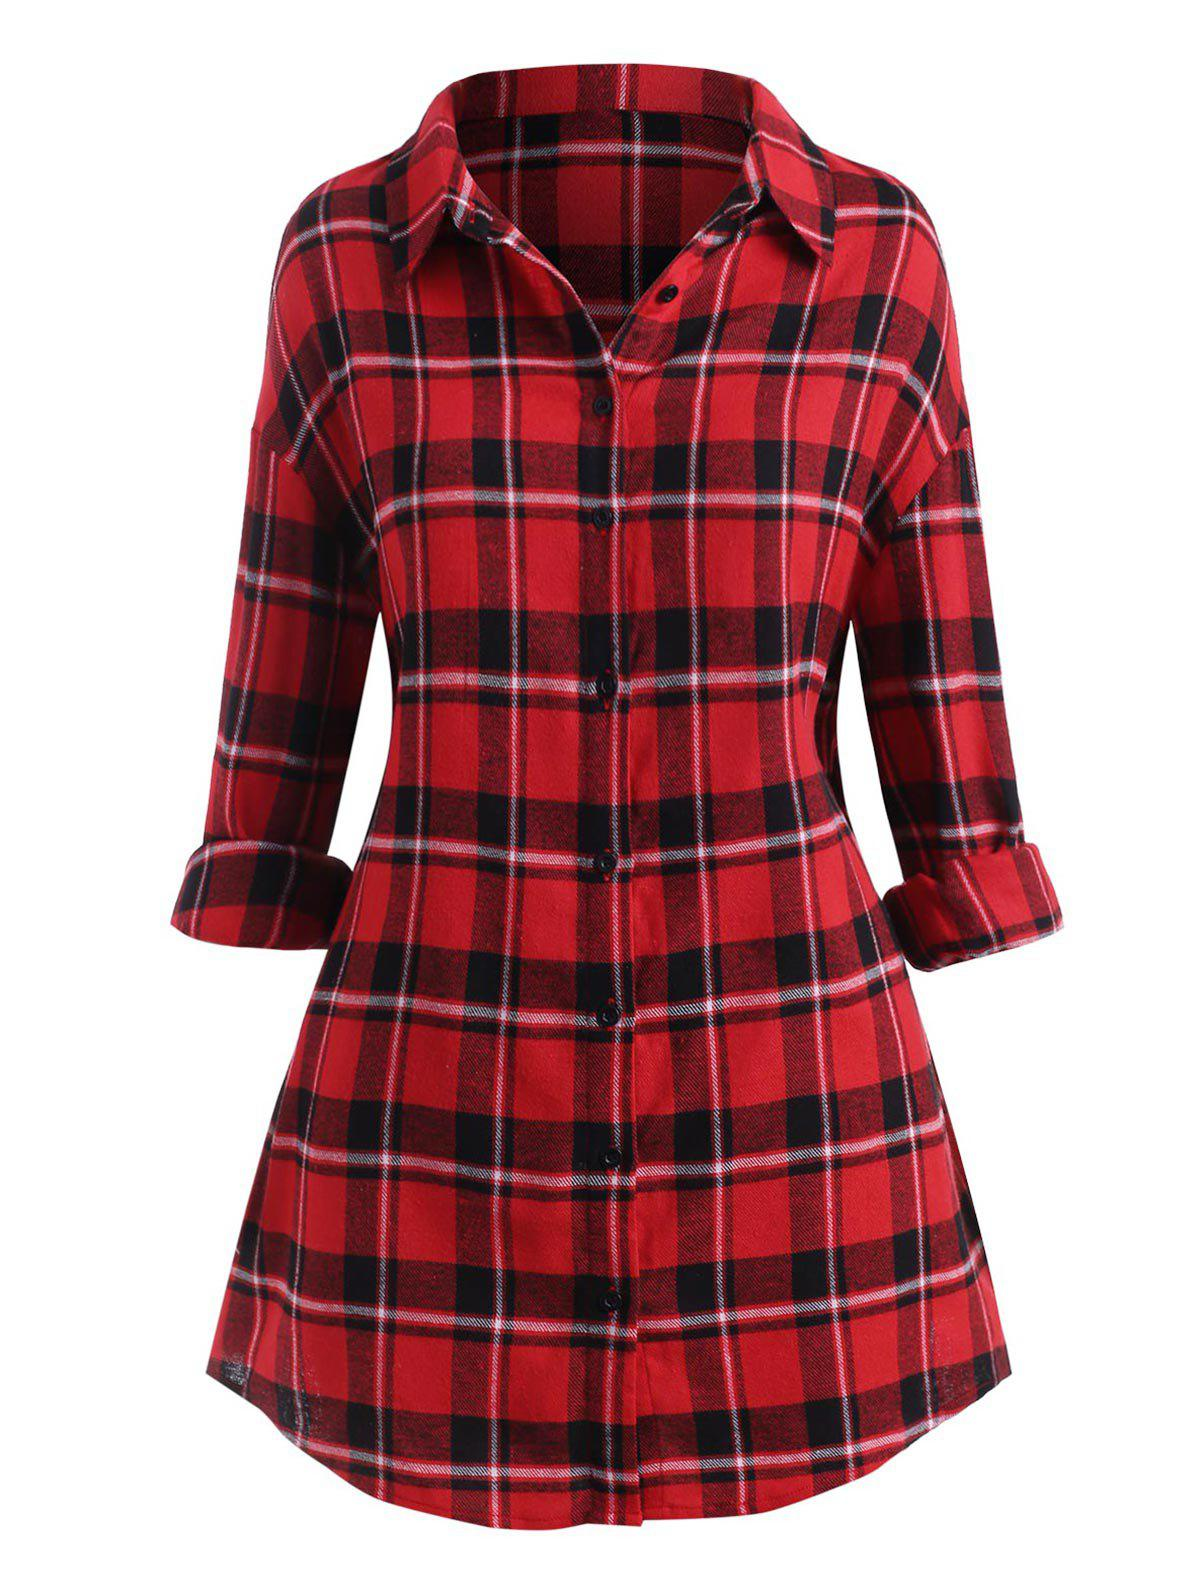 Plus Size Plaid Drop Shoulder Button Up Shirt - RED 2X